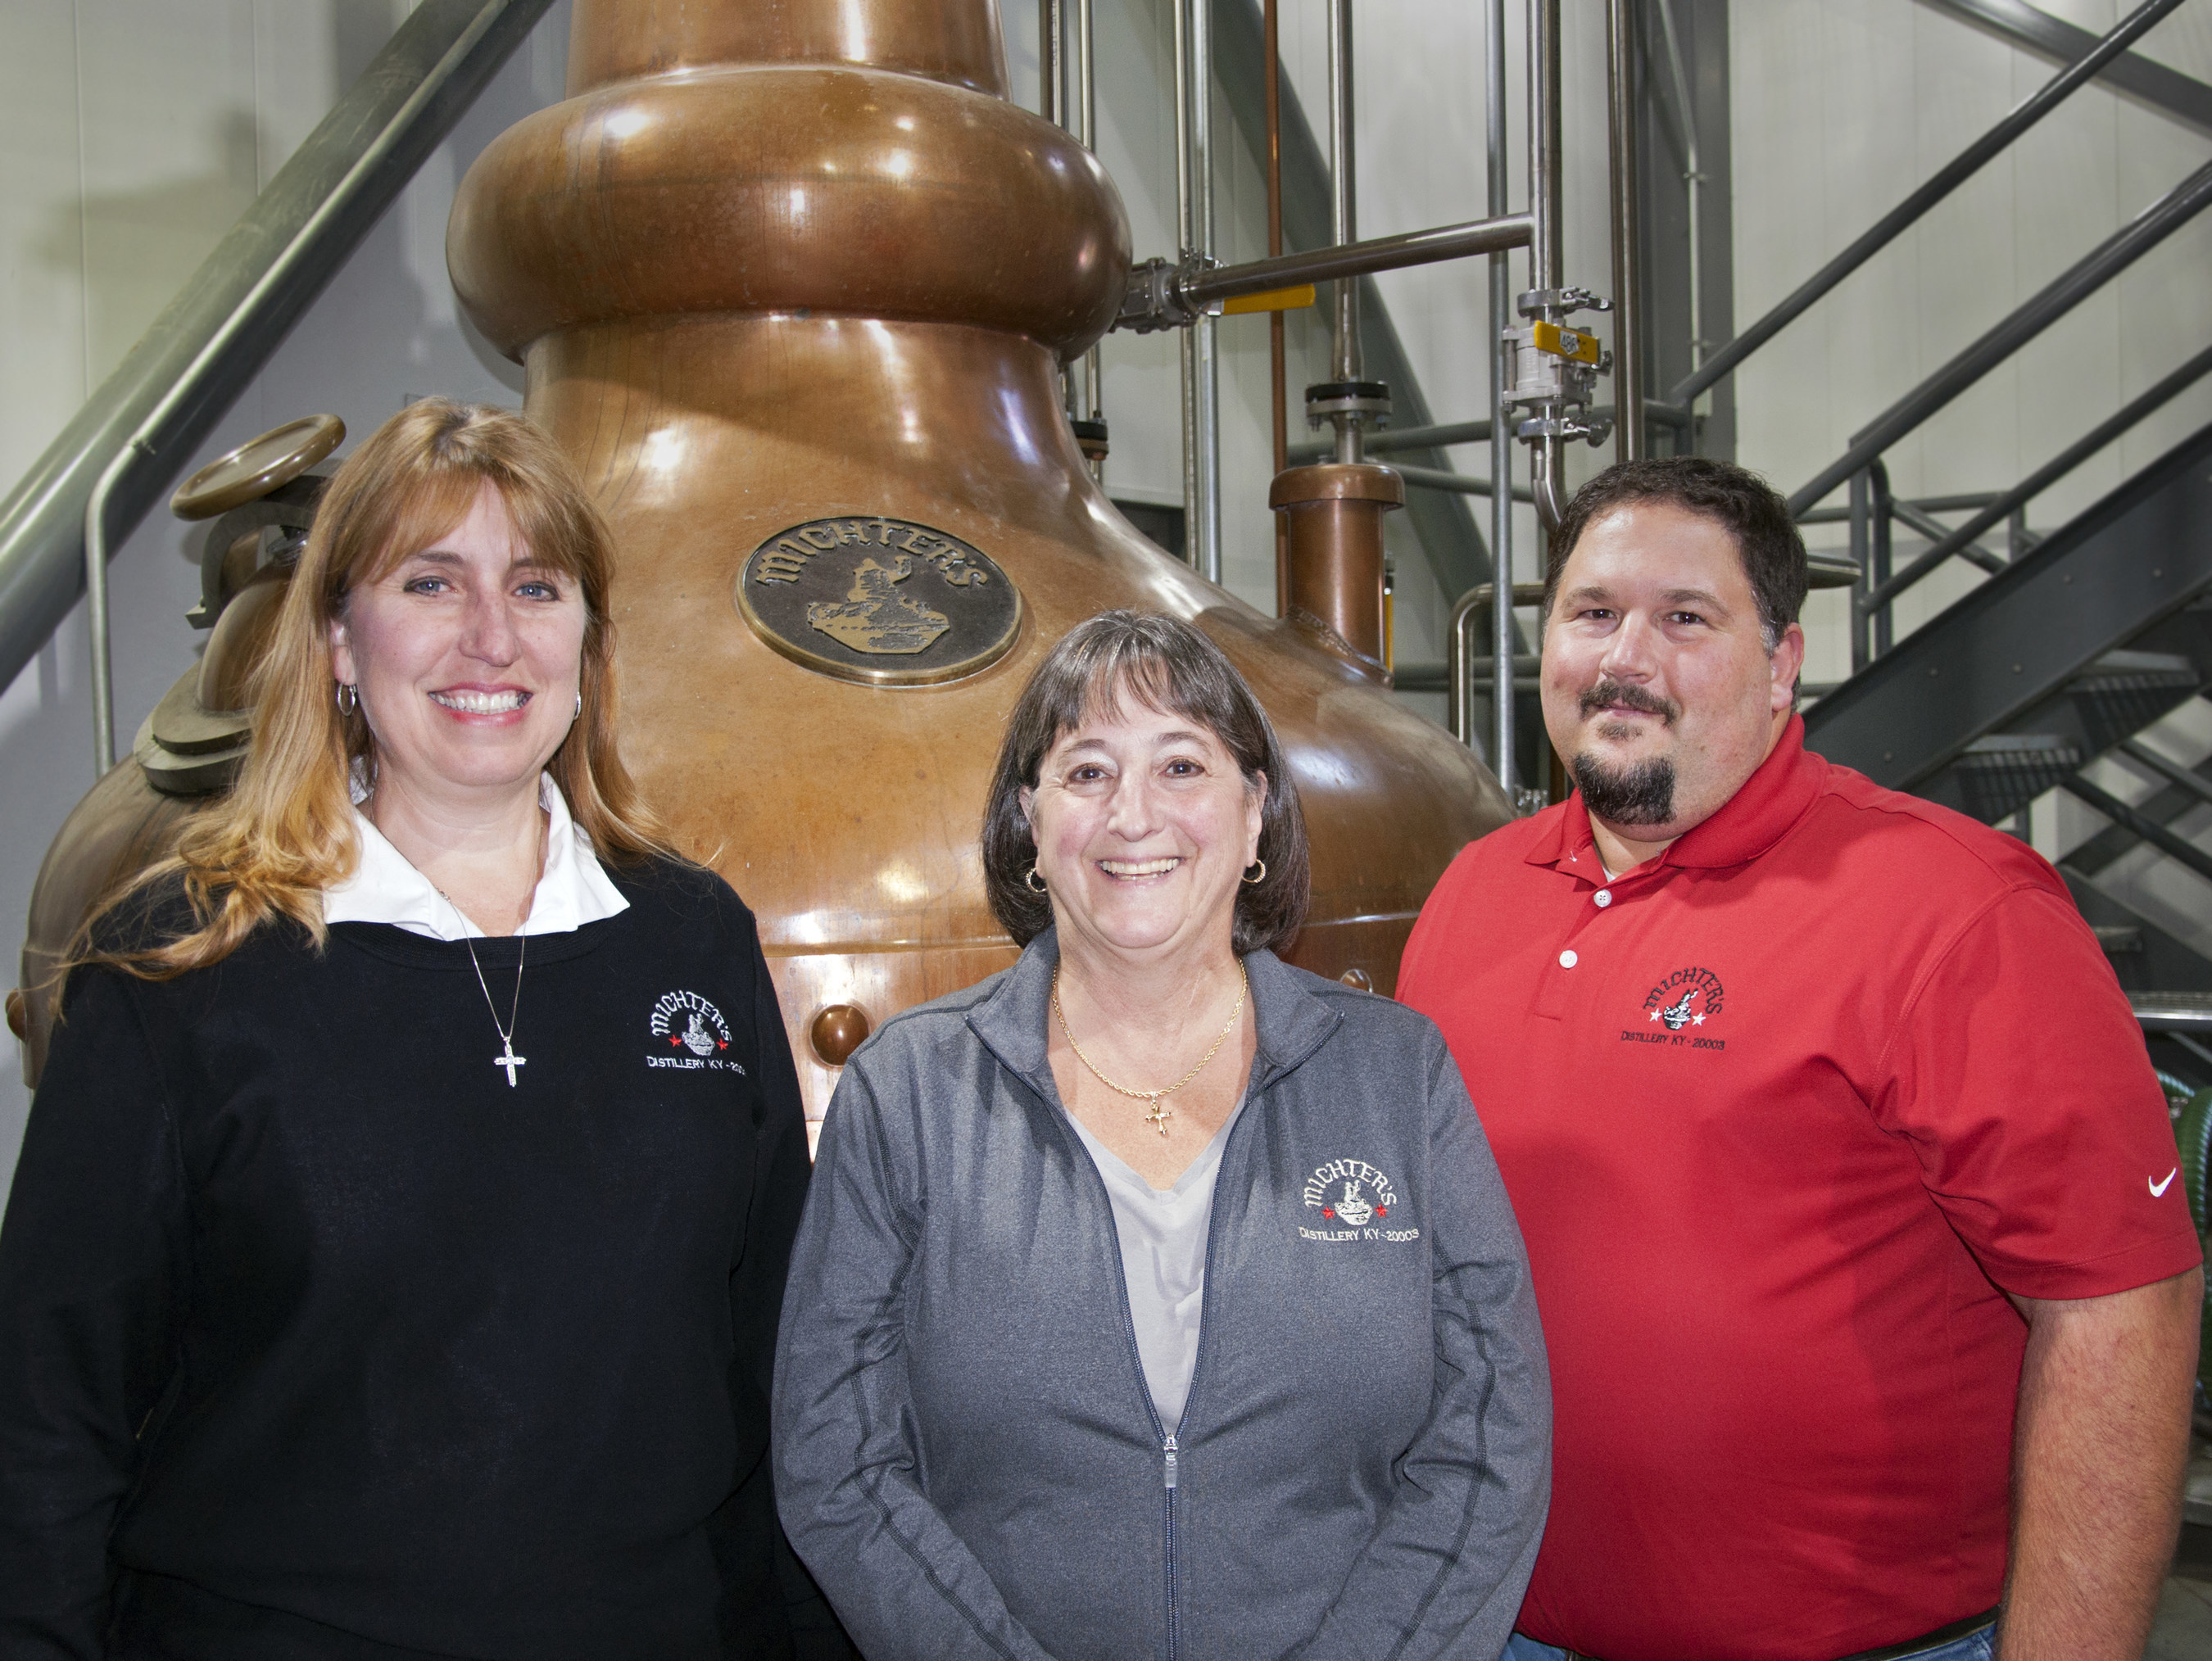 (From left to right) Andrea Wilson, Michter's Master of Maturation & Vice President - General Manager, Pamela Heilmann, Michter's Master Distiller & Vice President - Production, and Dan McKee, Michter's Distiller